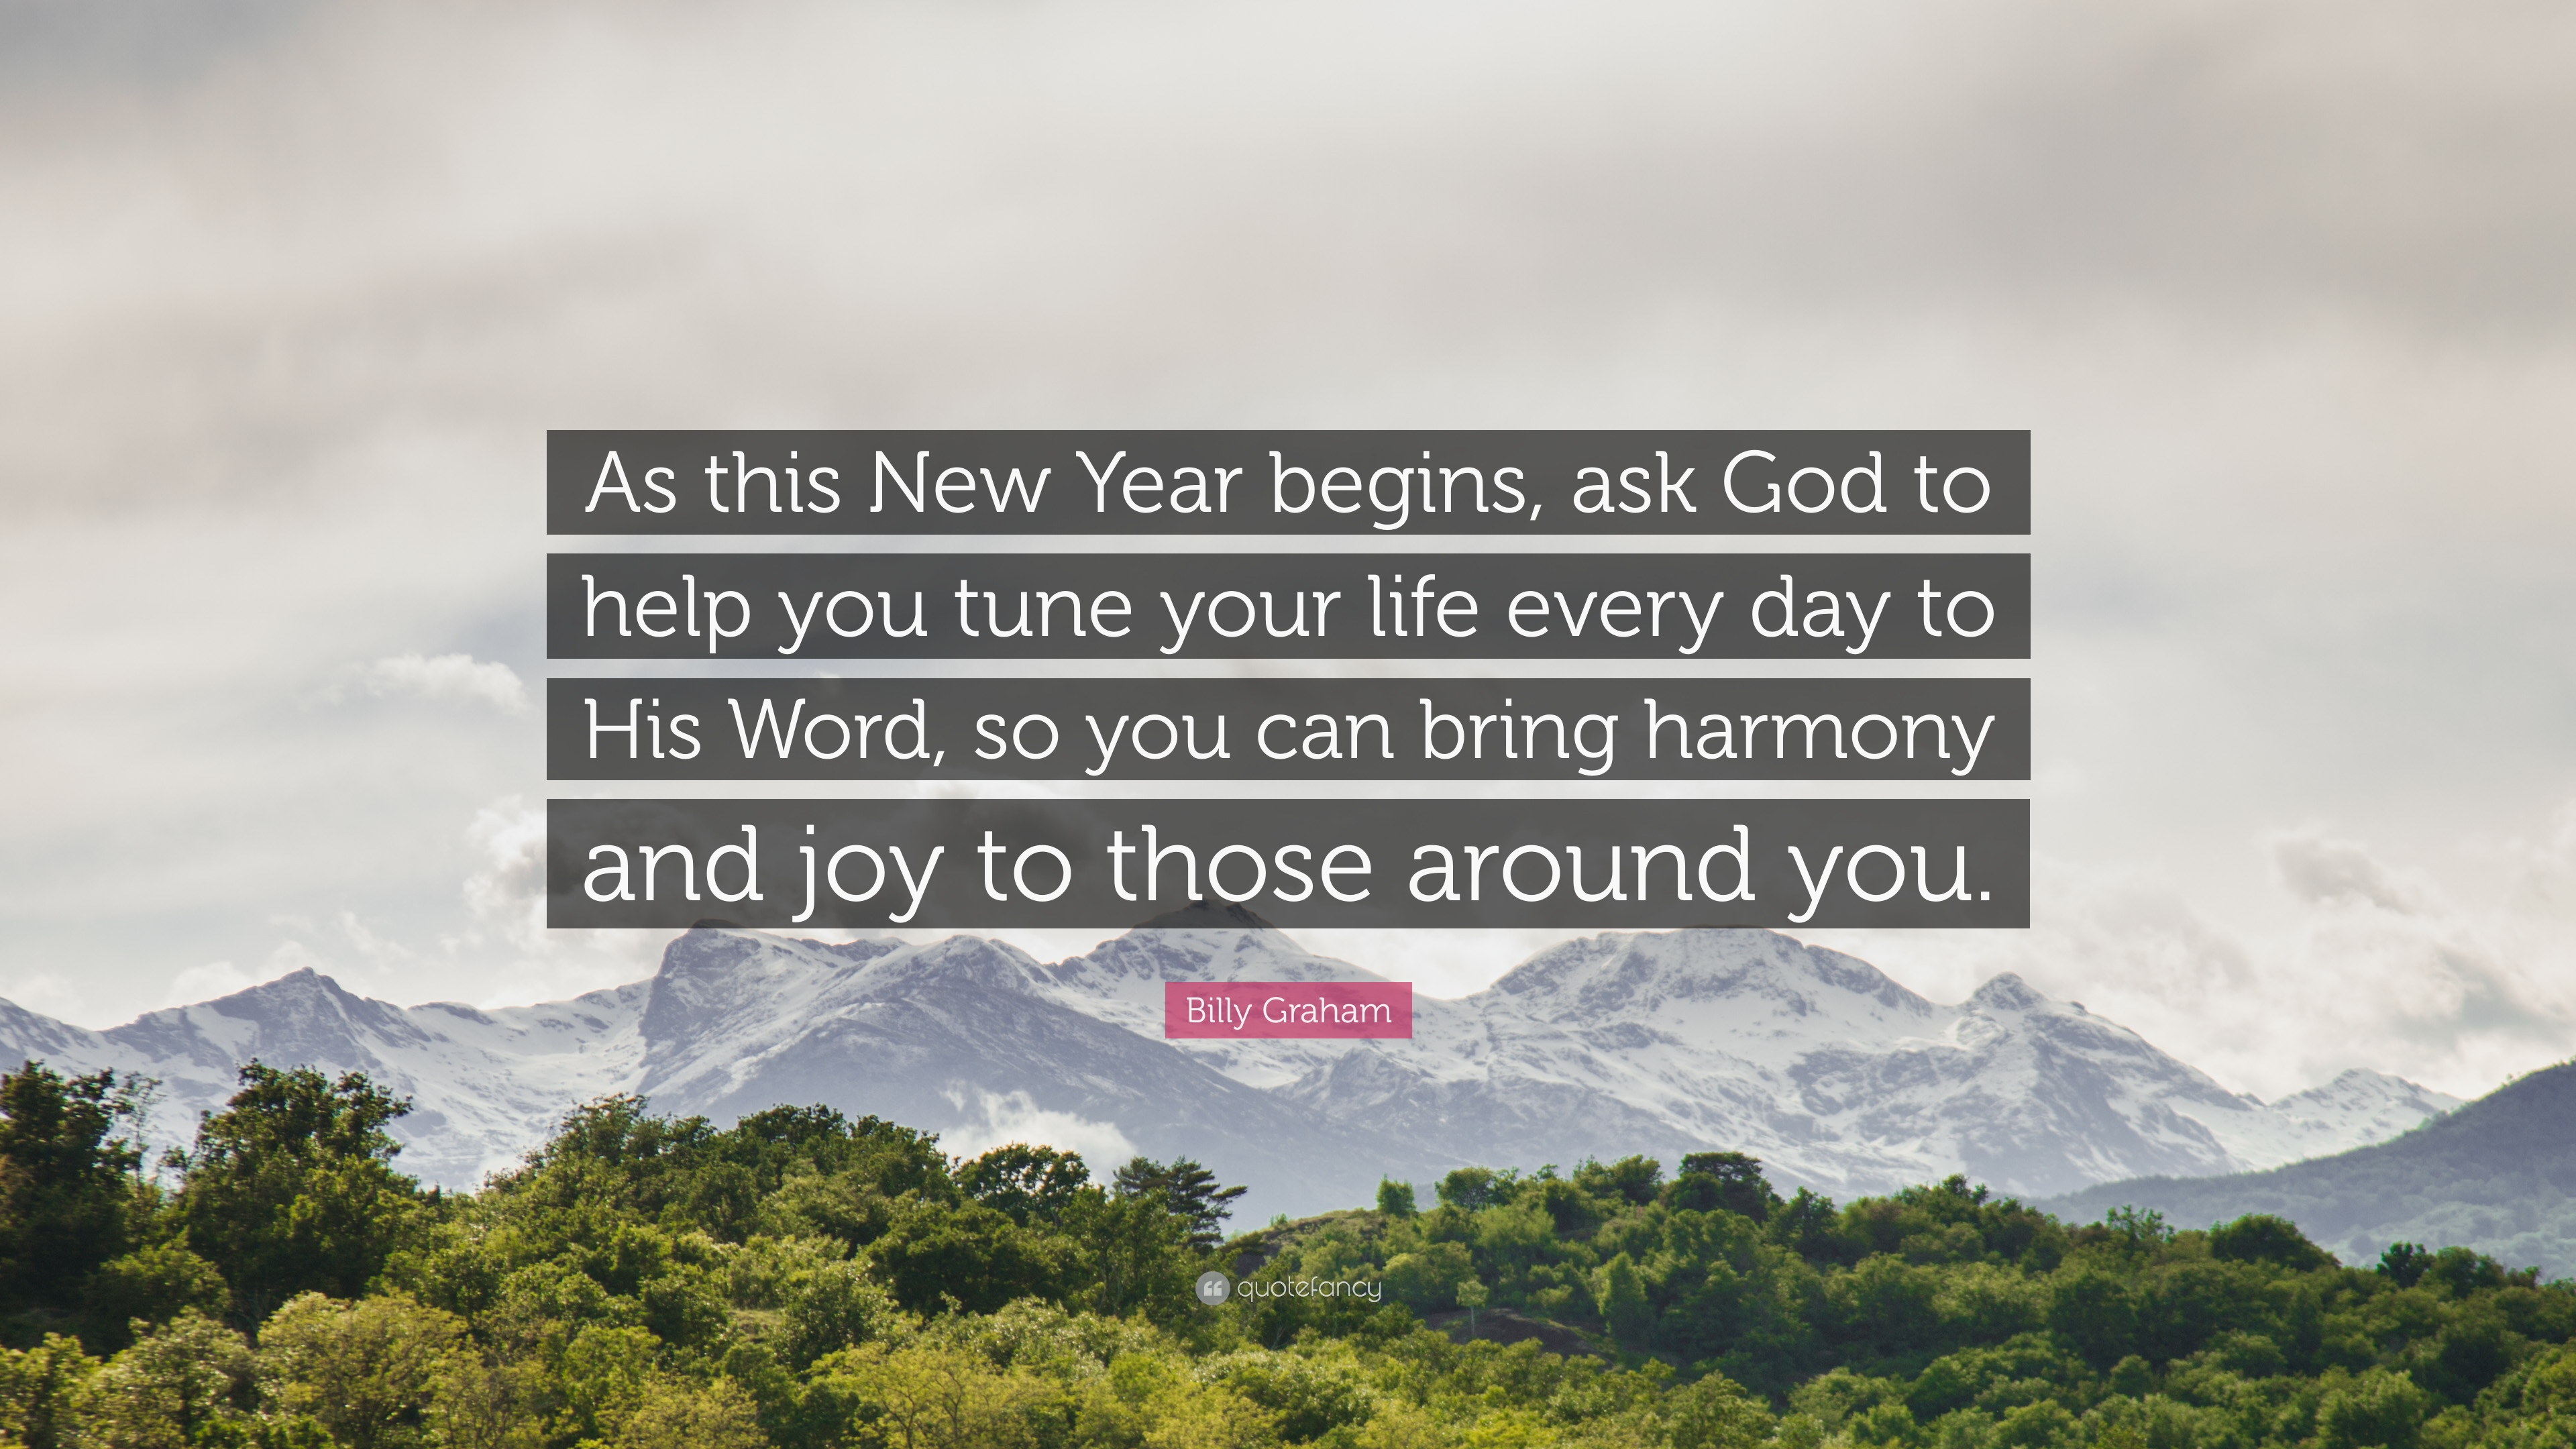 billy graham quote as this new year begins ask god to help you